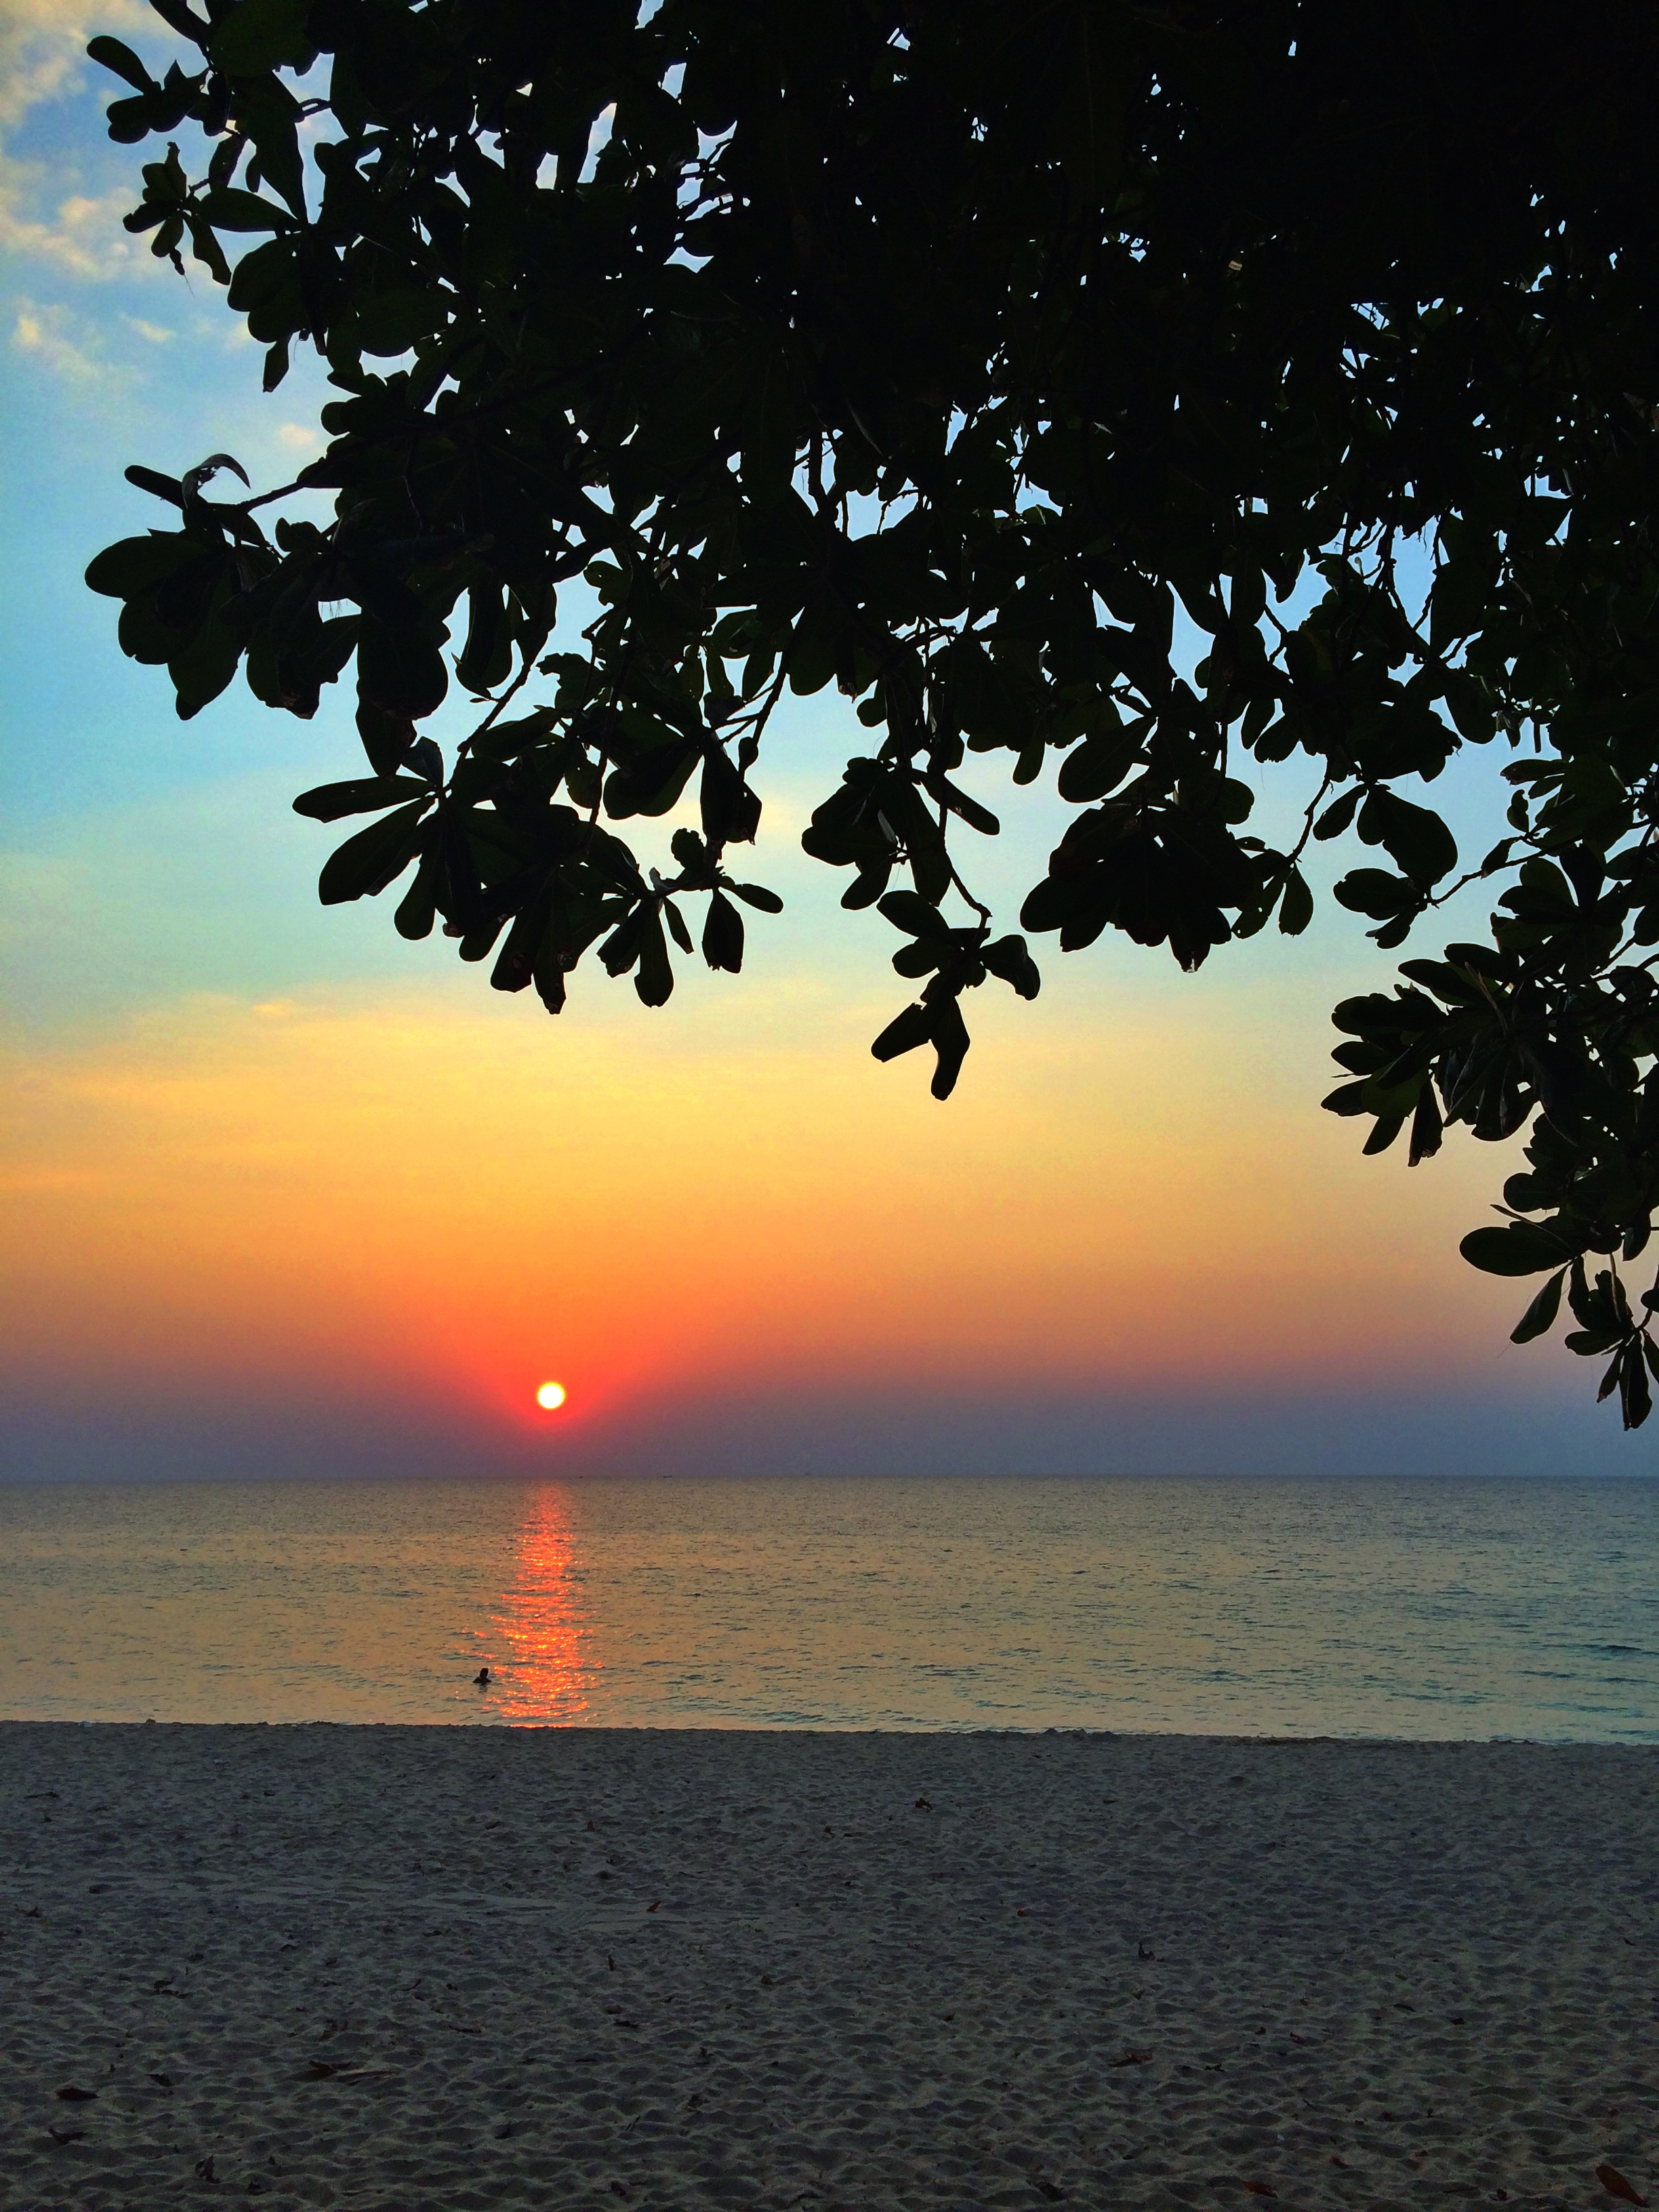 One of the sunsets we watched at Surin Beach